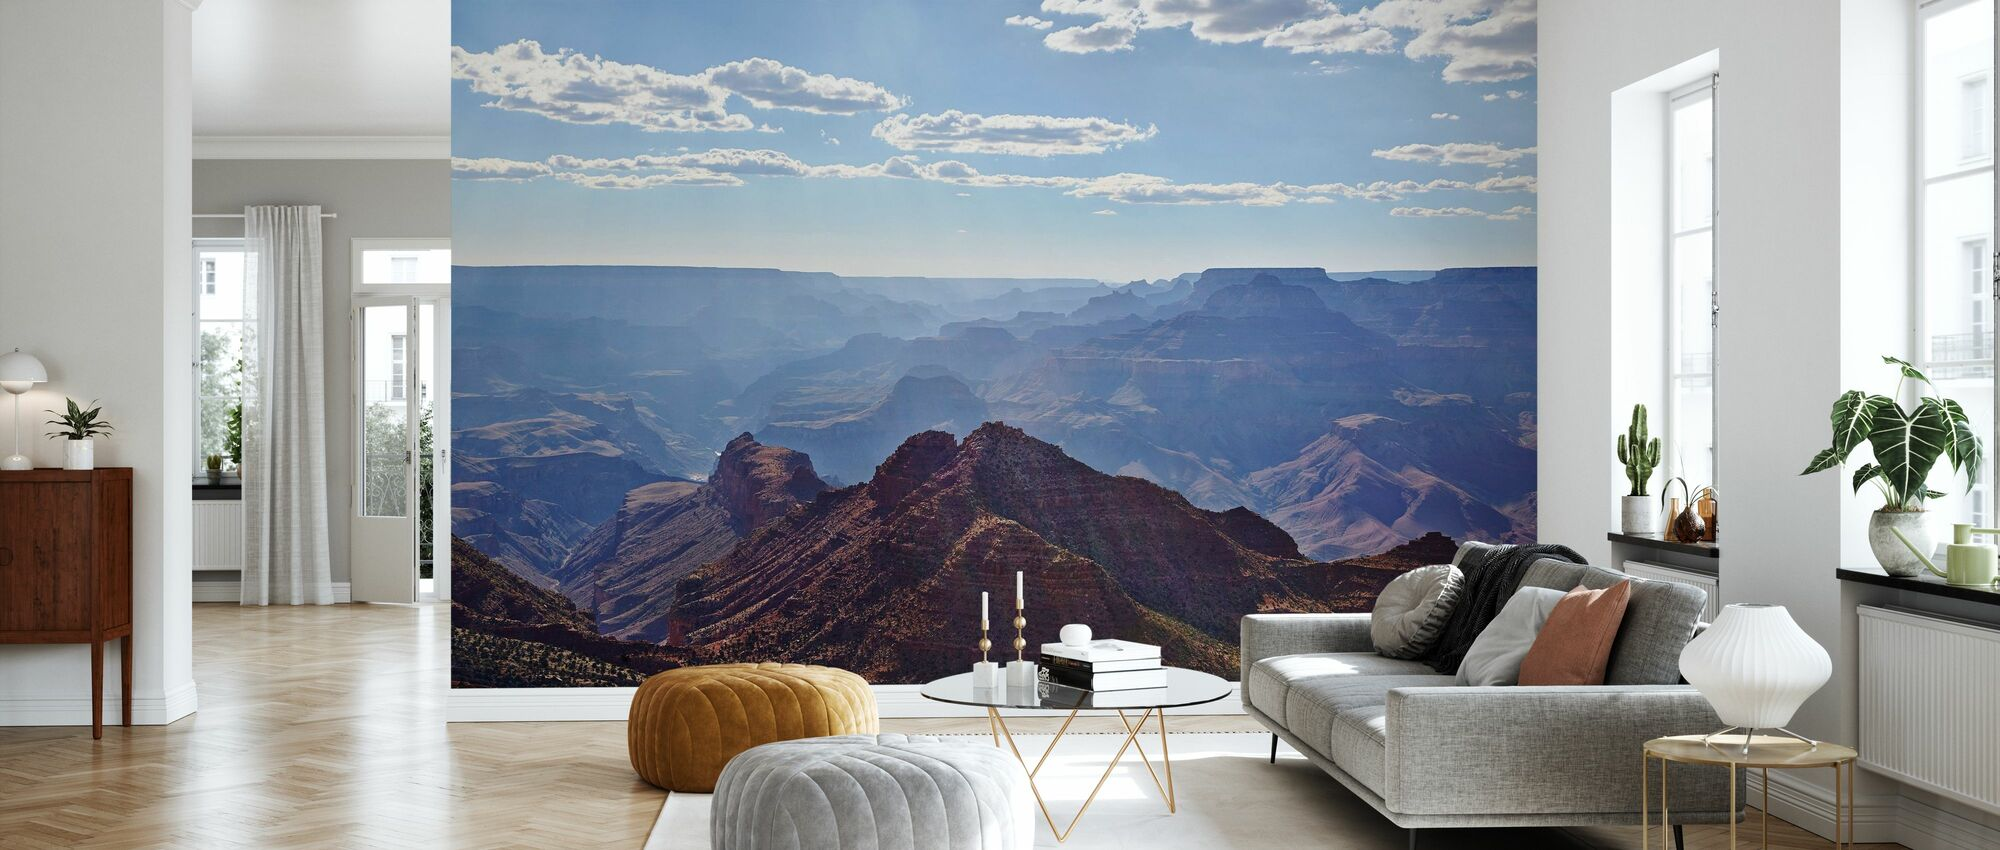 View Over Grand Canyon - Wallpaper - Living Room